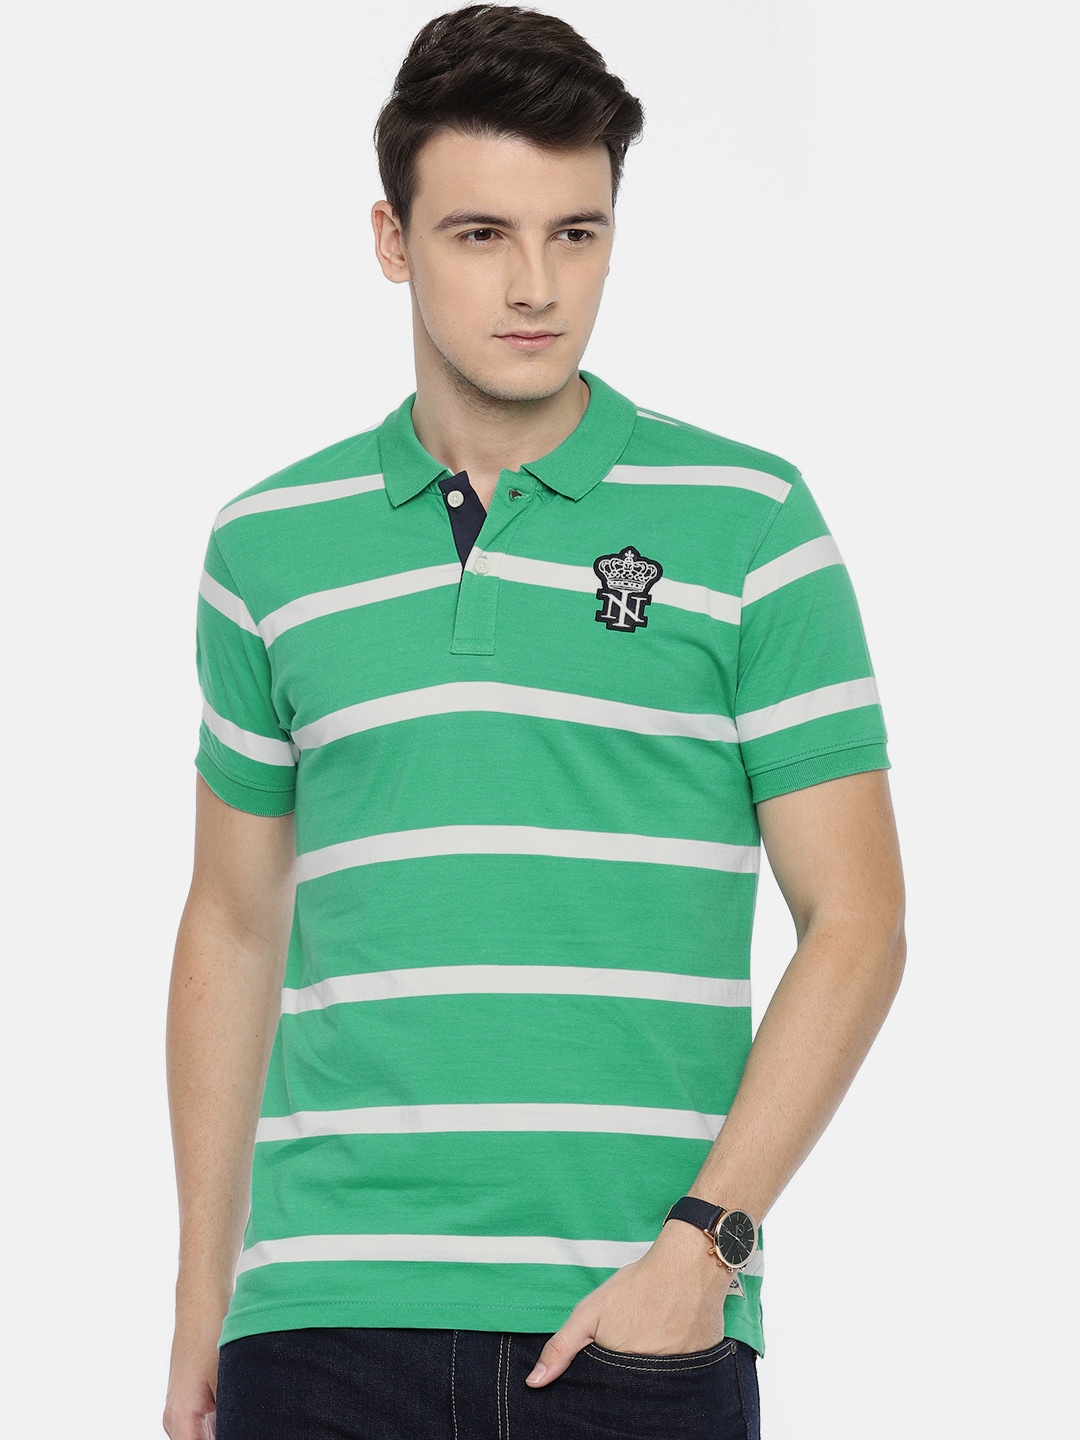 b3f4faed Buy Indigo Nation Men Green & White Striped Polo T Shirt - Tshirts ...